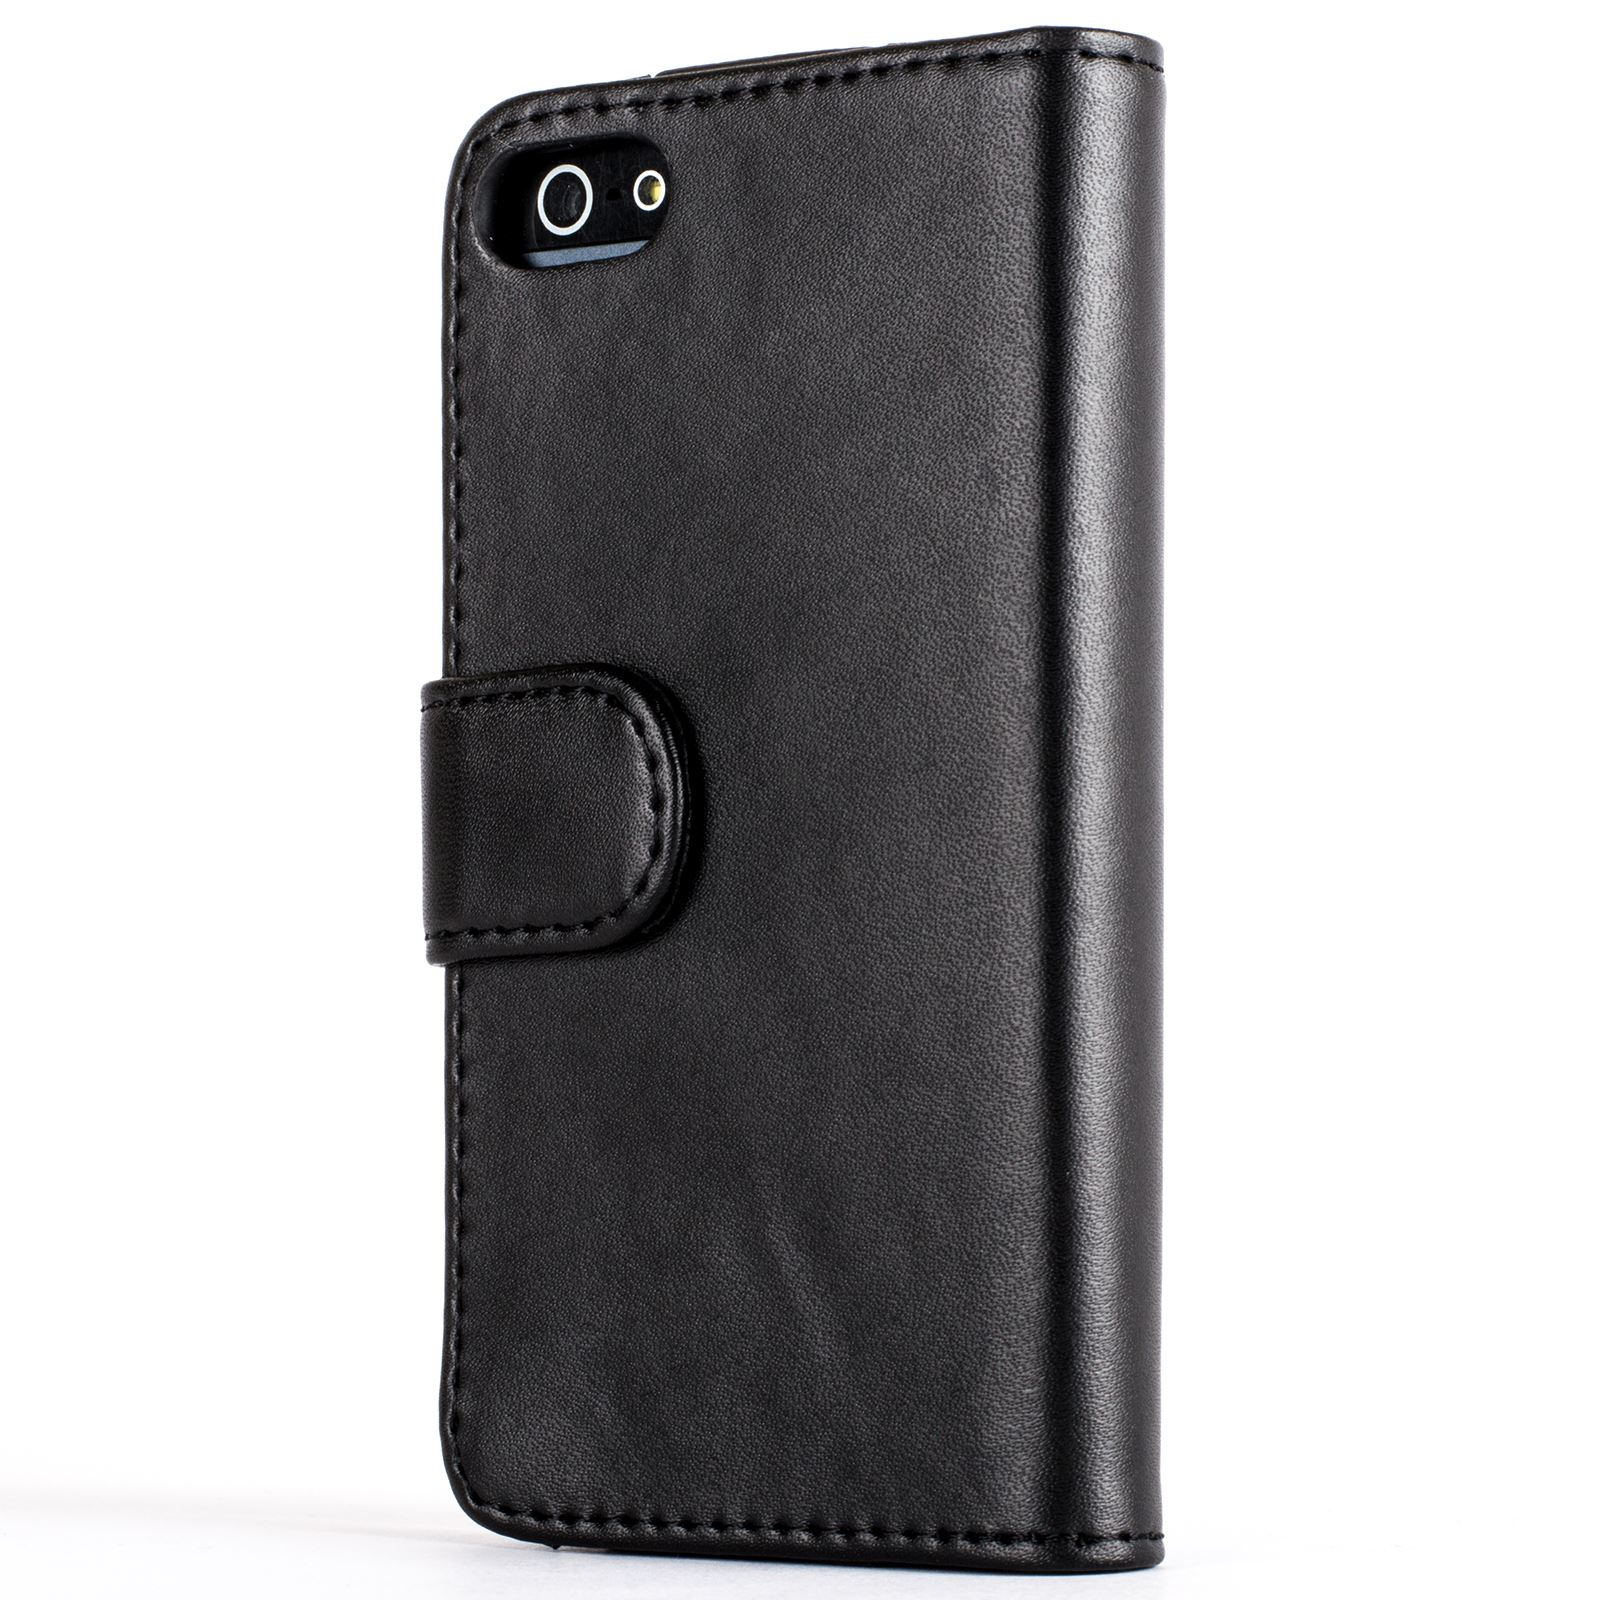 Snakehive premium leather wallet flip case cover for apple iphone 5 5s se ebay - Iphone 5s leather case ...